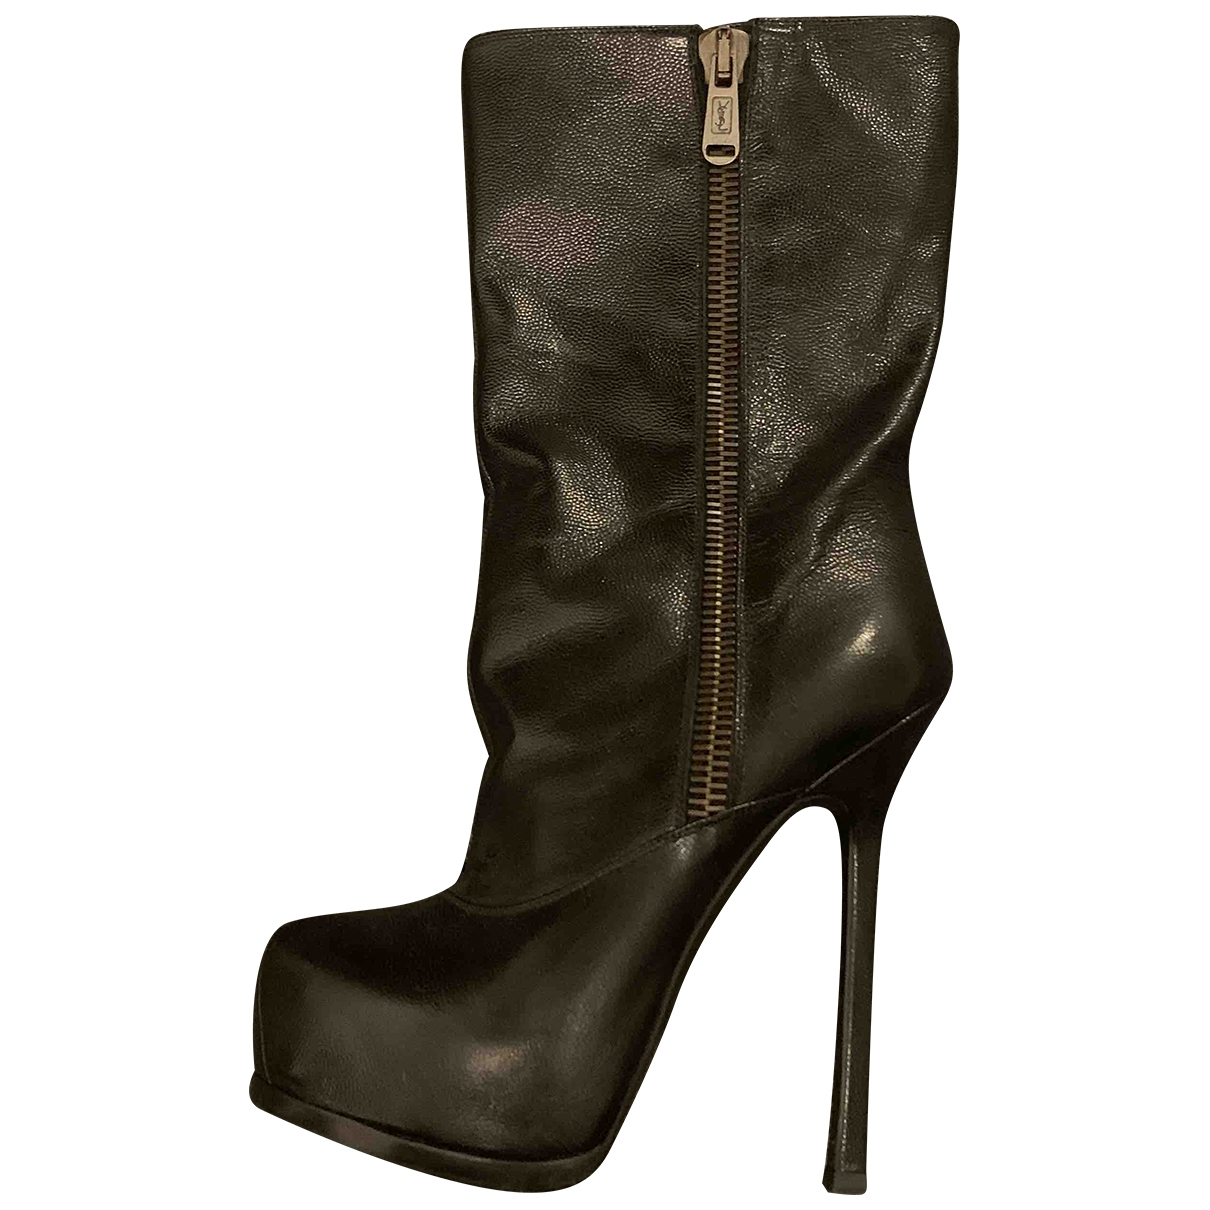 Yves Saint Laurent \N Black Leather Ankle boots for Women 37 IT